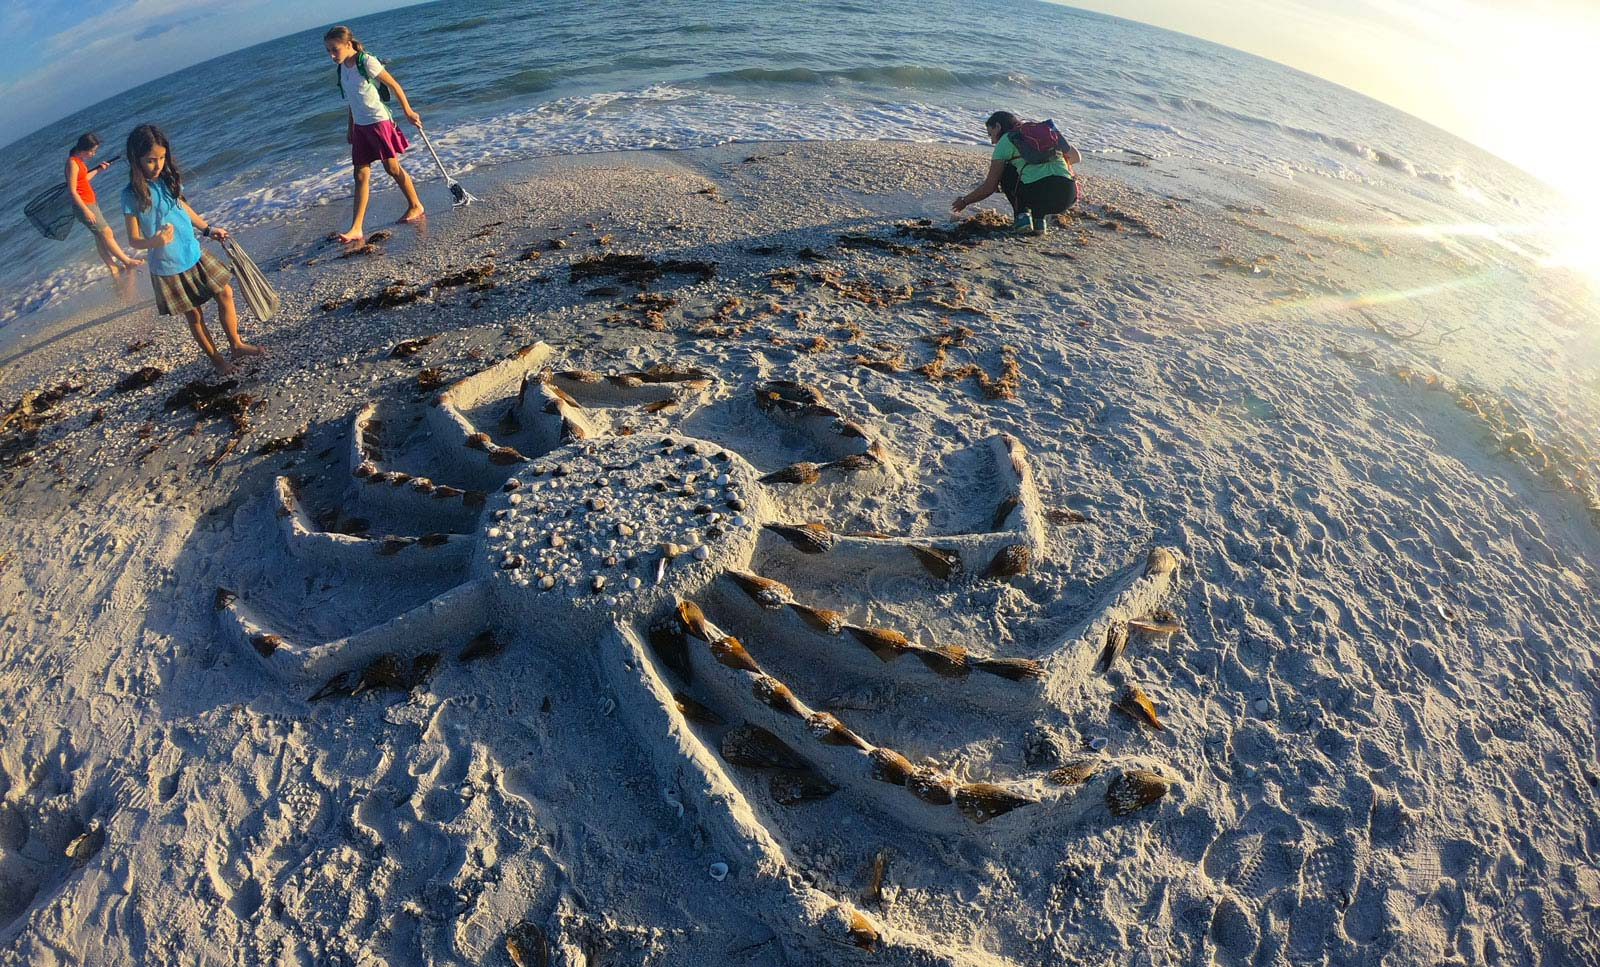 4 girls on Sanibel Island beach looking at crab-shaped sand art